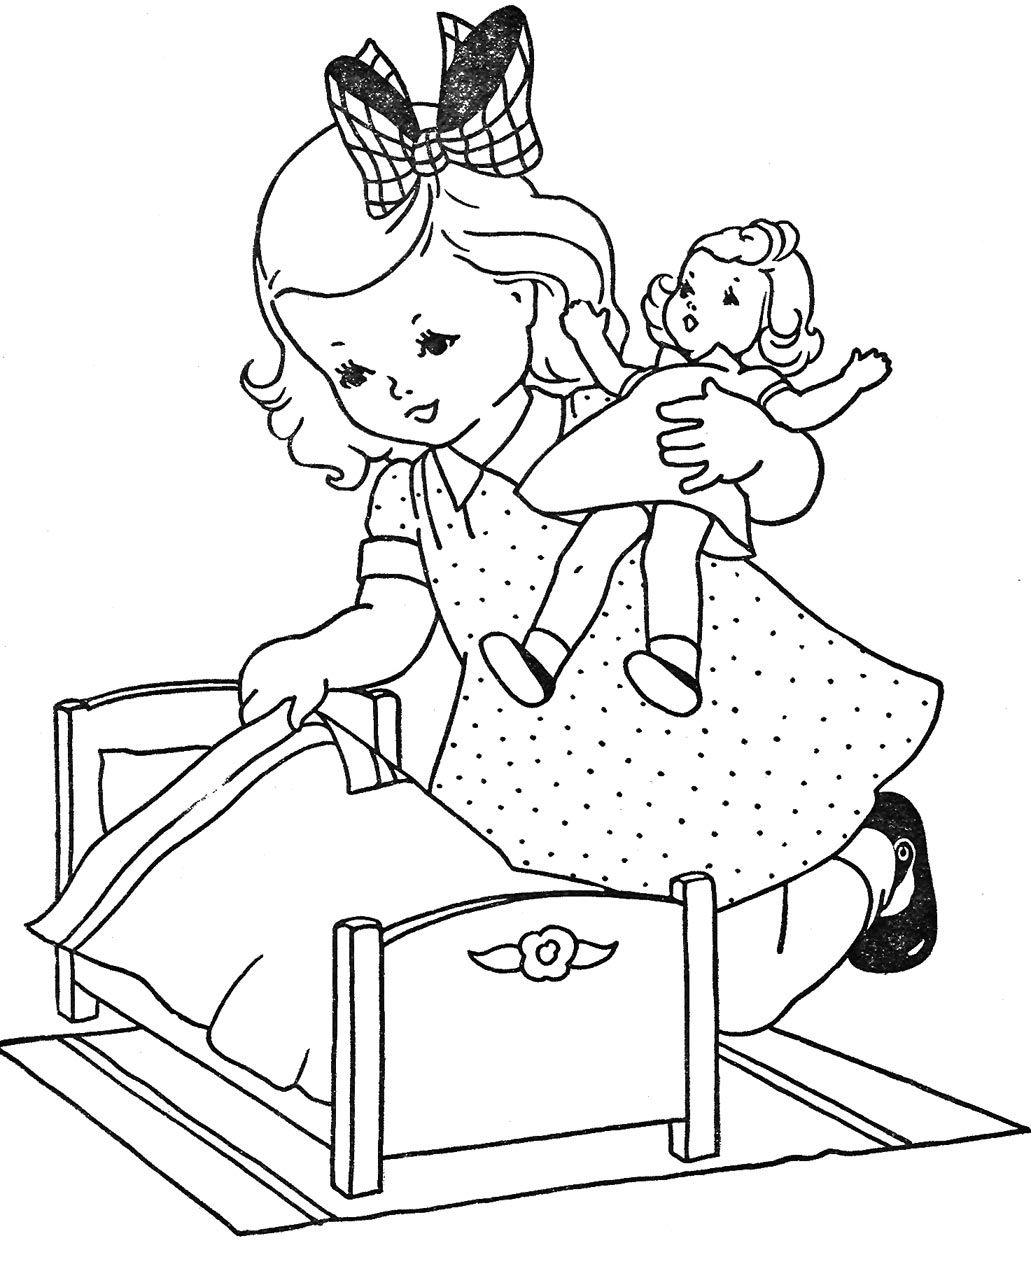 coloring page for kids zebra coloring pages free printable kids coloring pages coloring page for kids